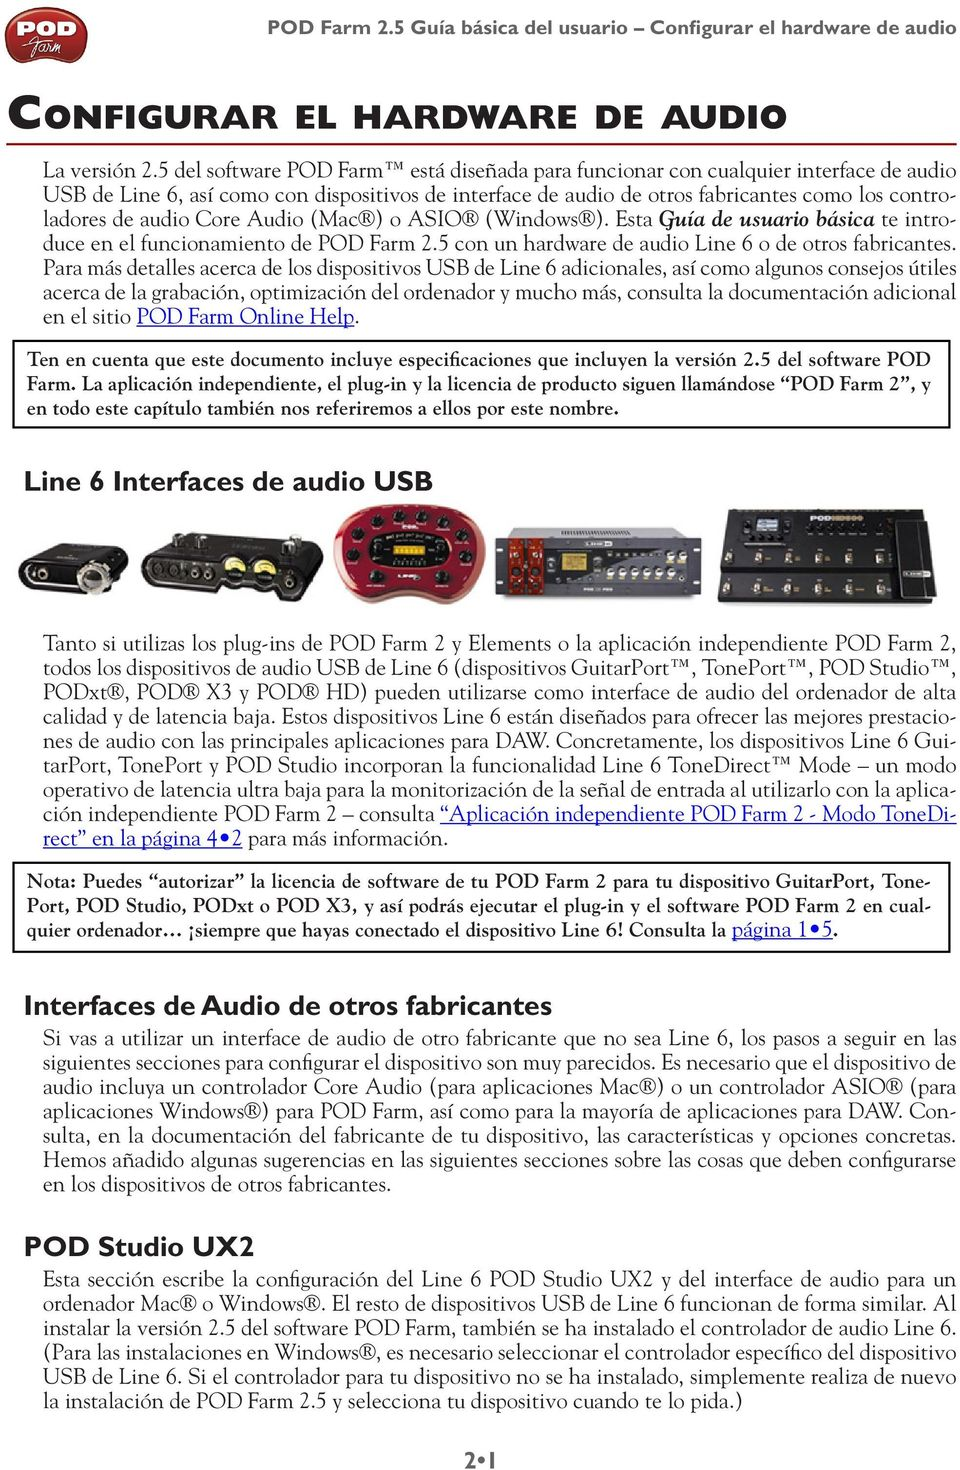 audio Core Audio (Mac ) o ASIO (Windows ). Esta Guía de usuario básica te introduce en el funcionamiento de POD Farm 2.5 con un hardware de audio Line 6 o de otros fabricantes.